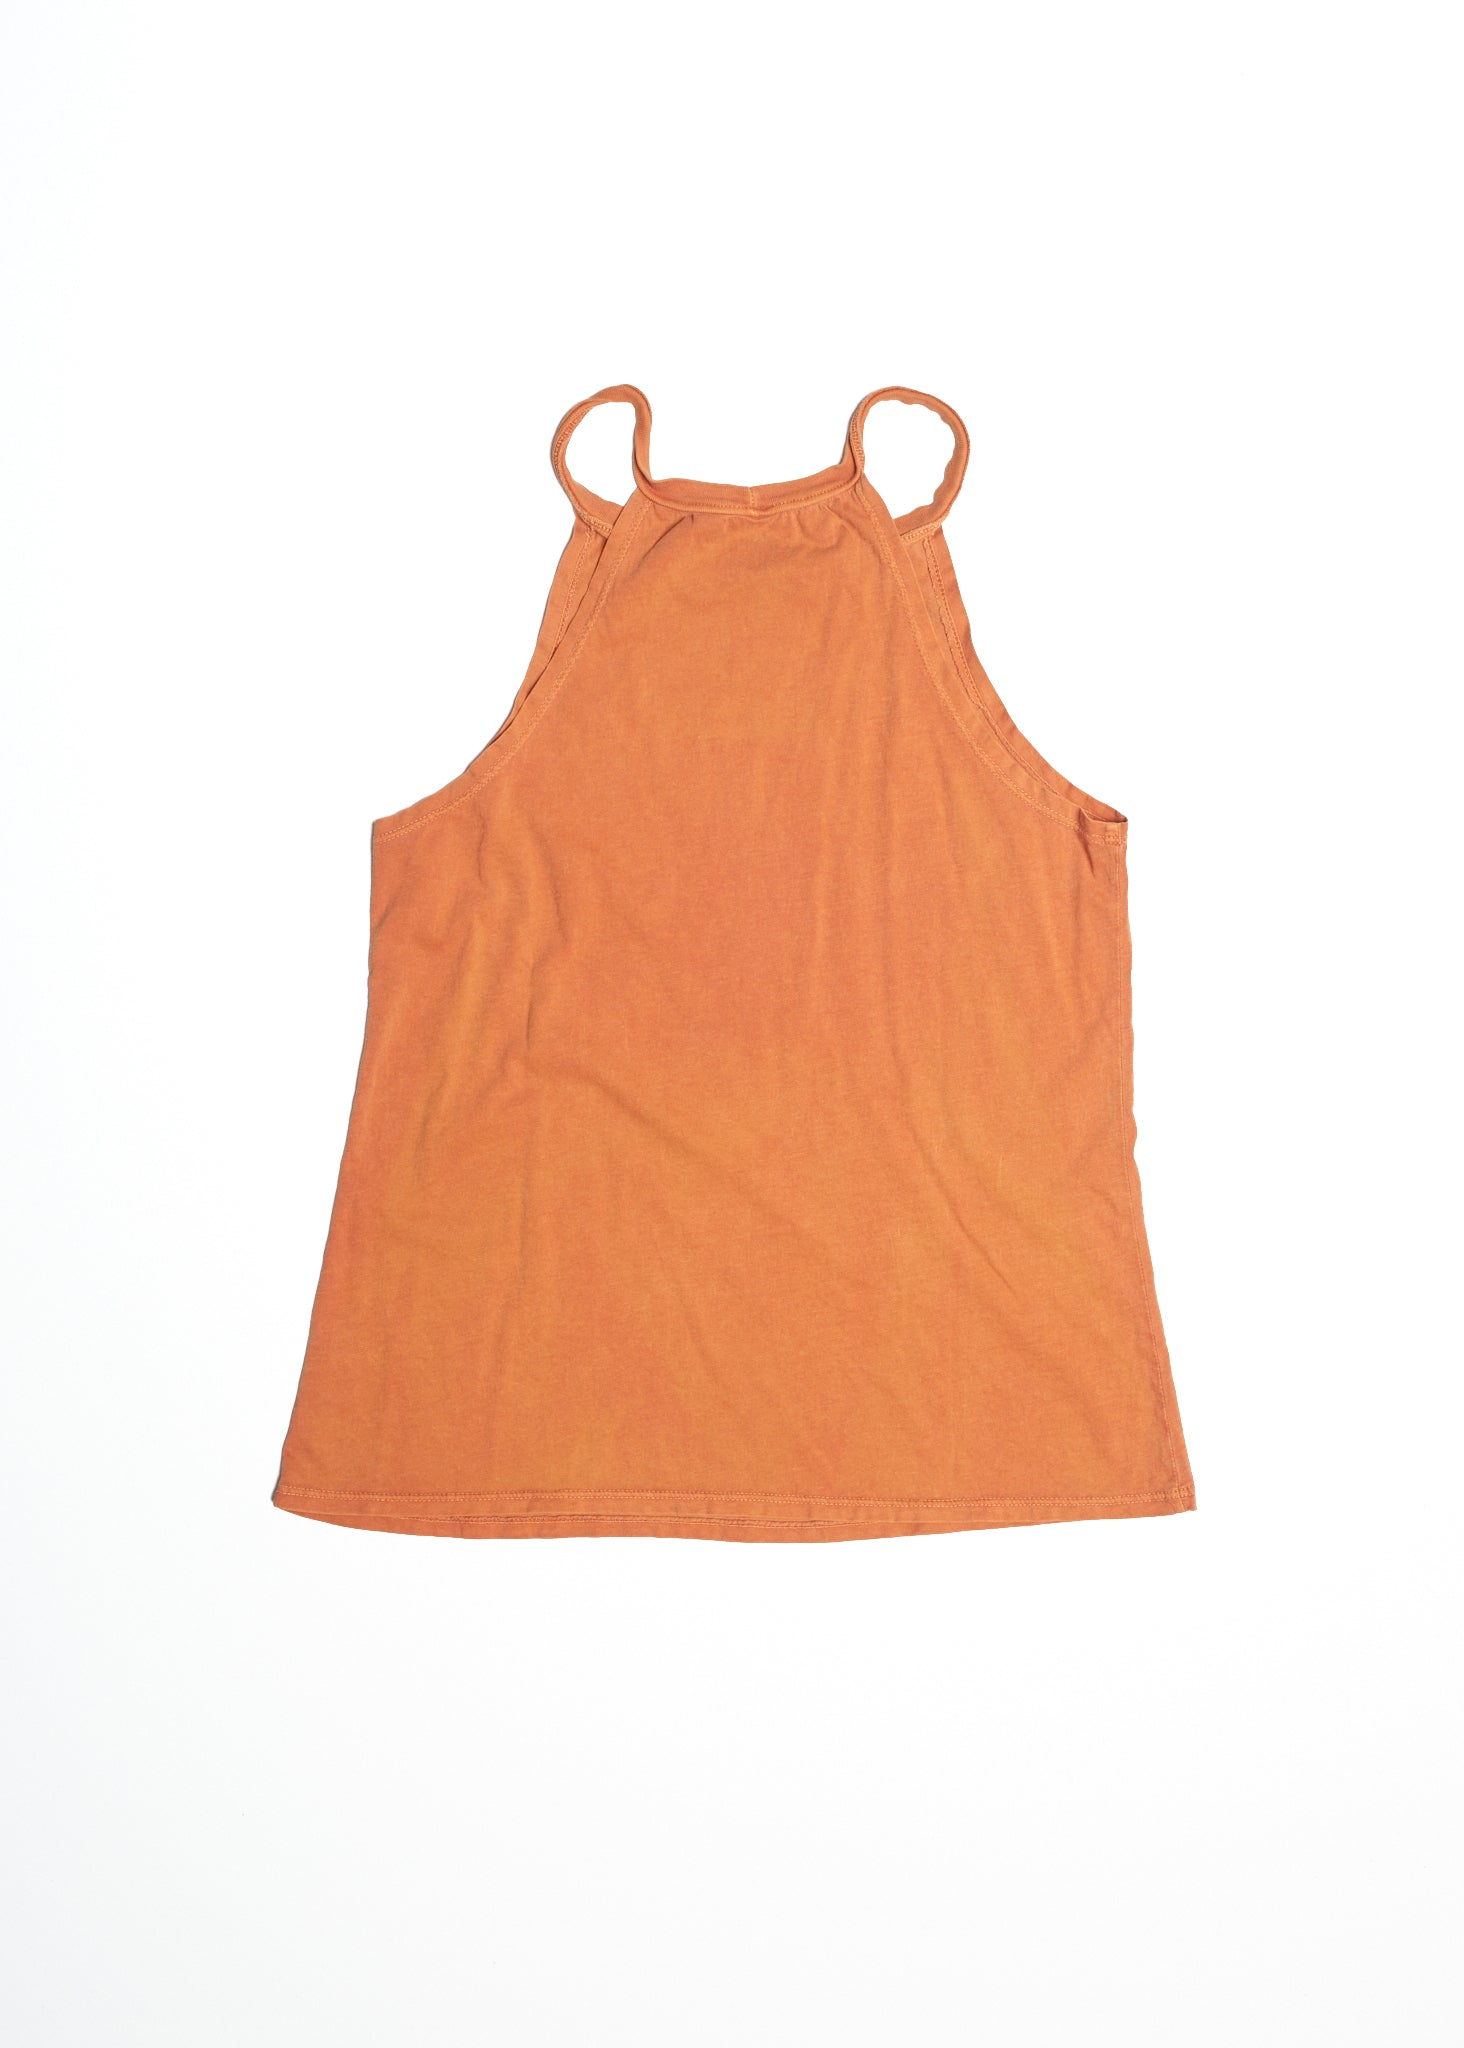 Trip Out Halter Tank - Maple